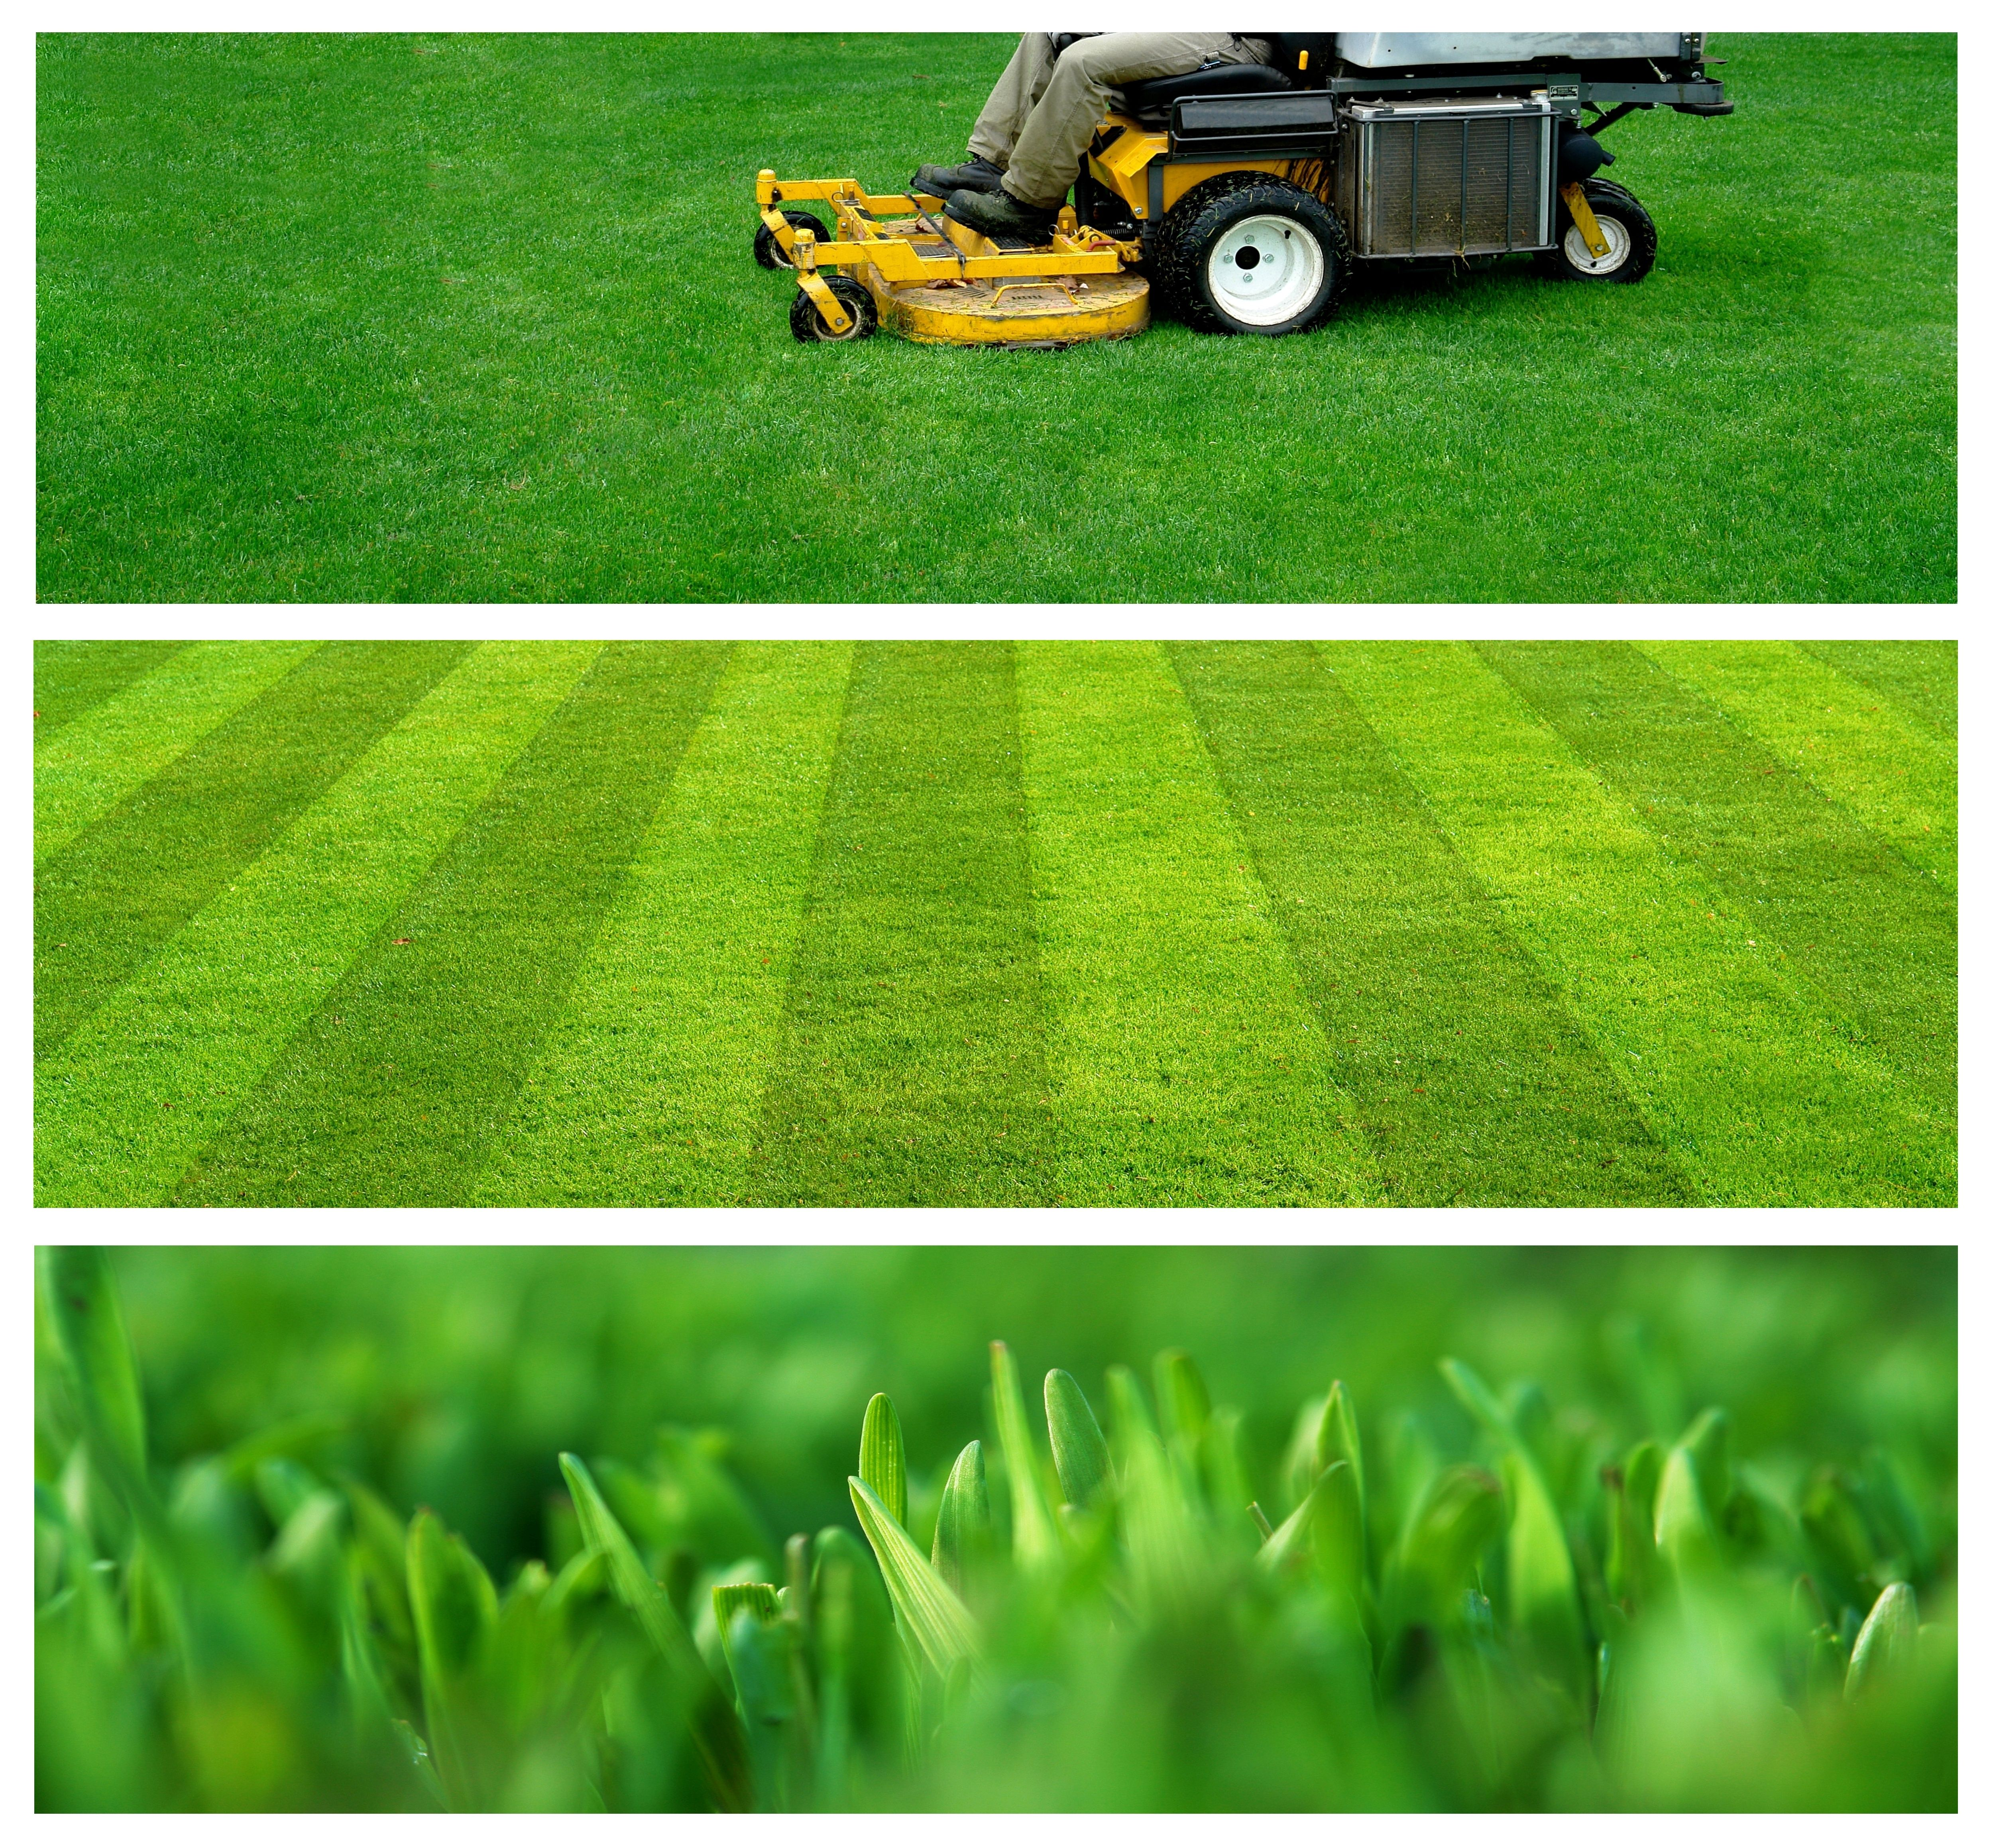 10 Tips For Finding The Perfect Lawn Mower This Season